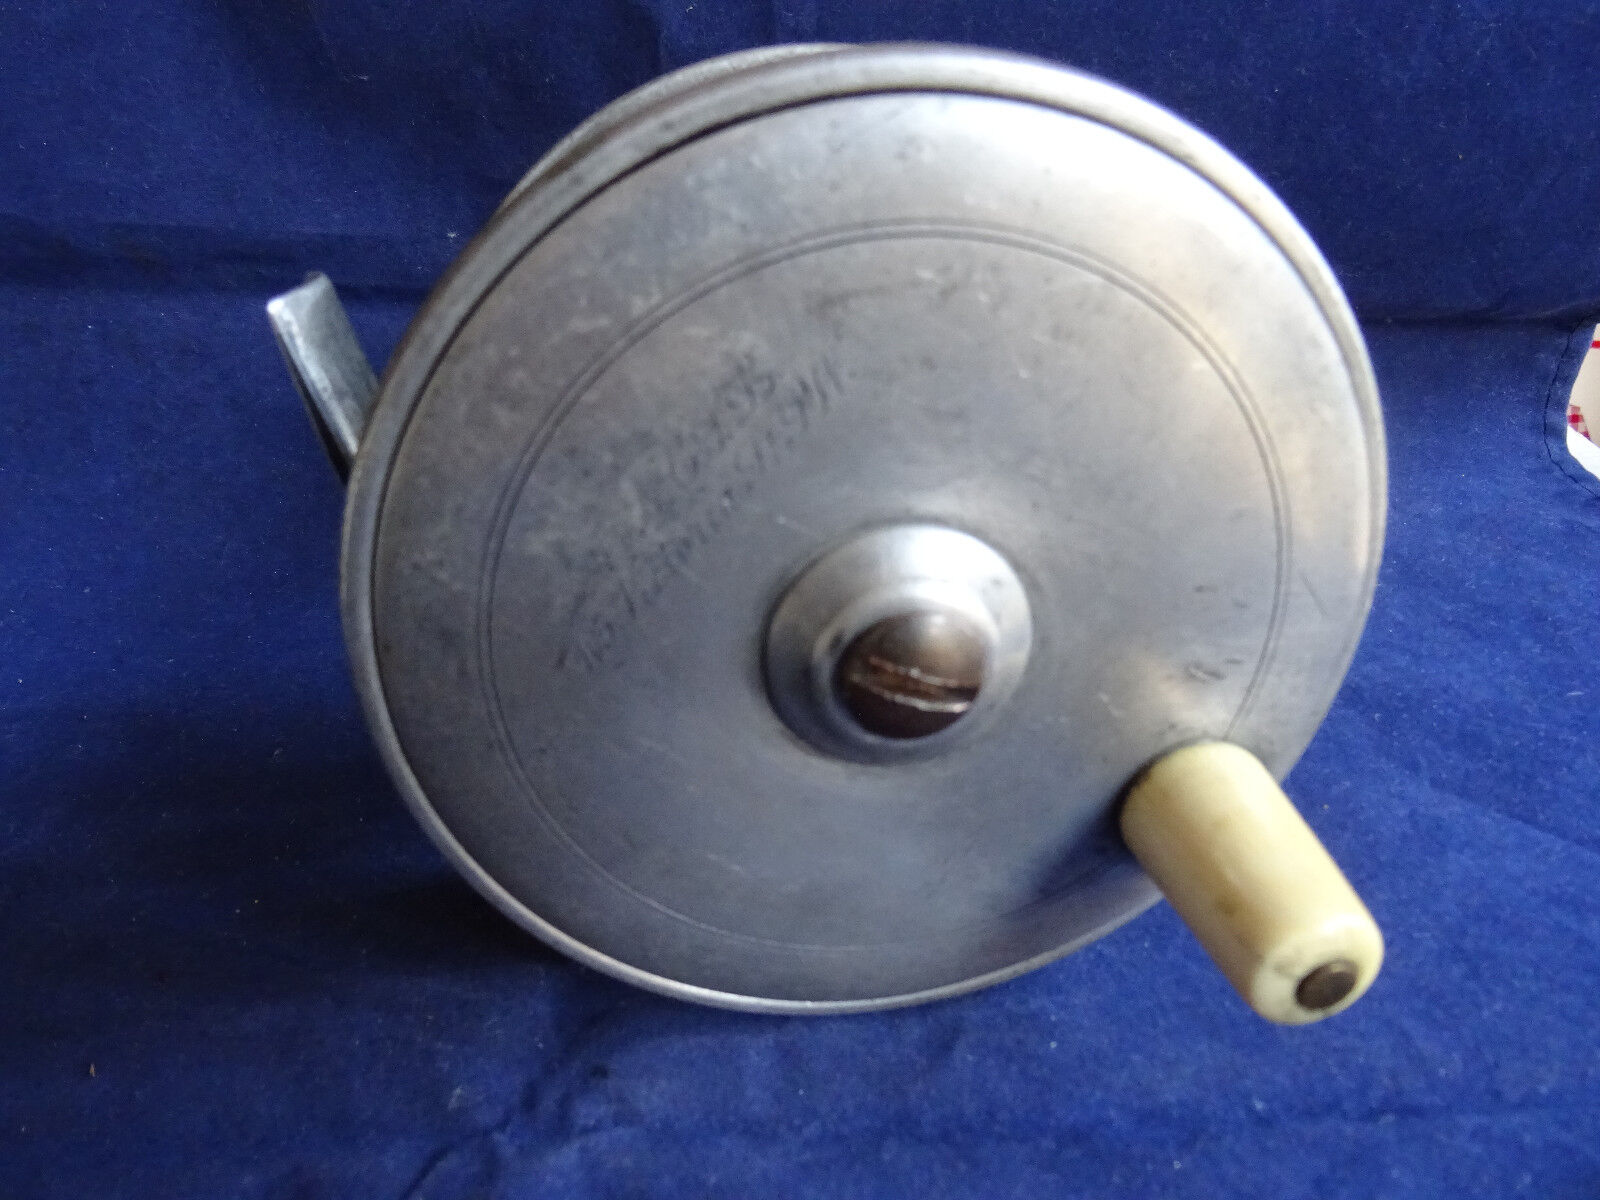 A SCARCE  VINTAGE VICTORIAN LIGHTWEIGHT ALLOY 4 1 4  ARMY & NAVY SALMON FLY REEL  we offer various famous brand